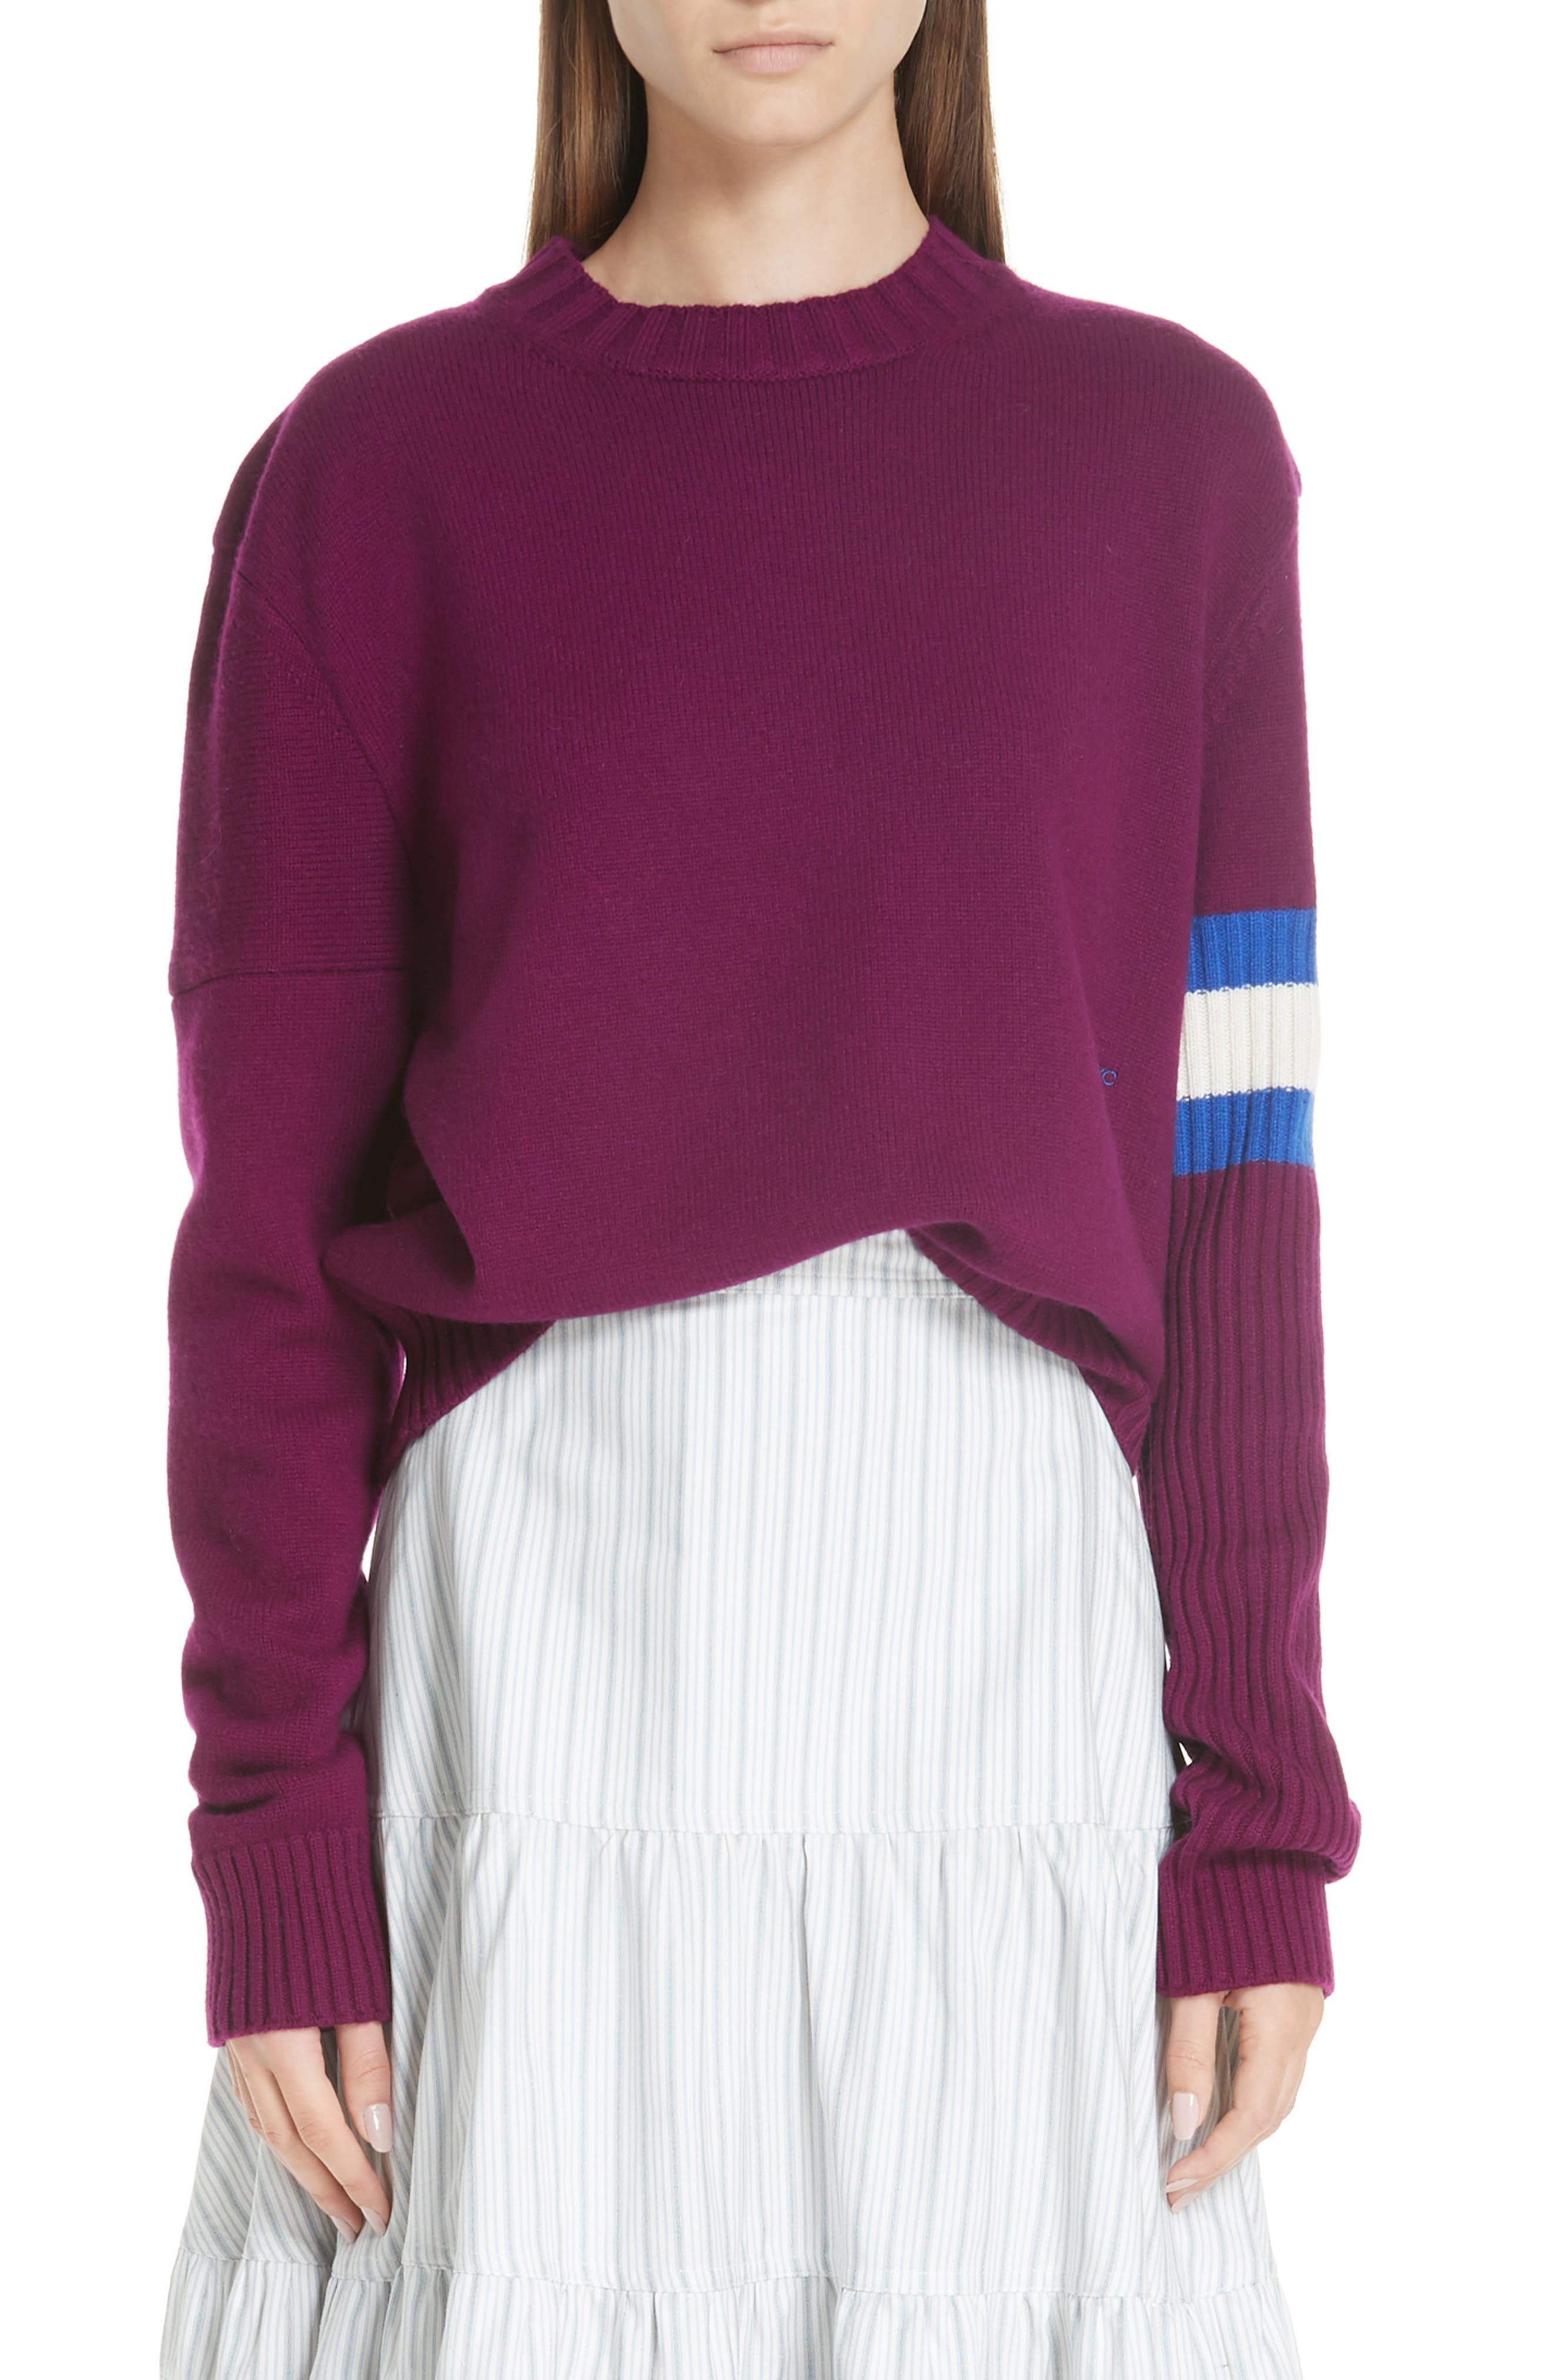 Cashmere Stripe Sleeve Sweater,                             Main thumbnail 1, color,                             DEEP PURPLE BRIGHT BLUE WHITE